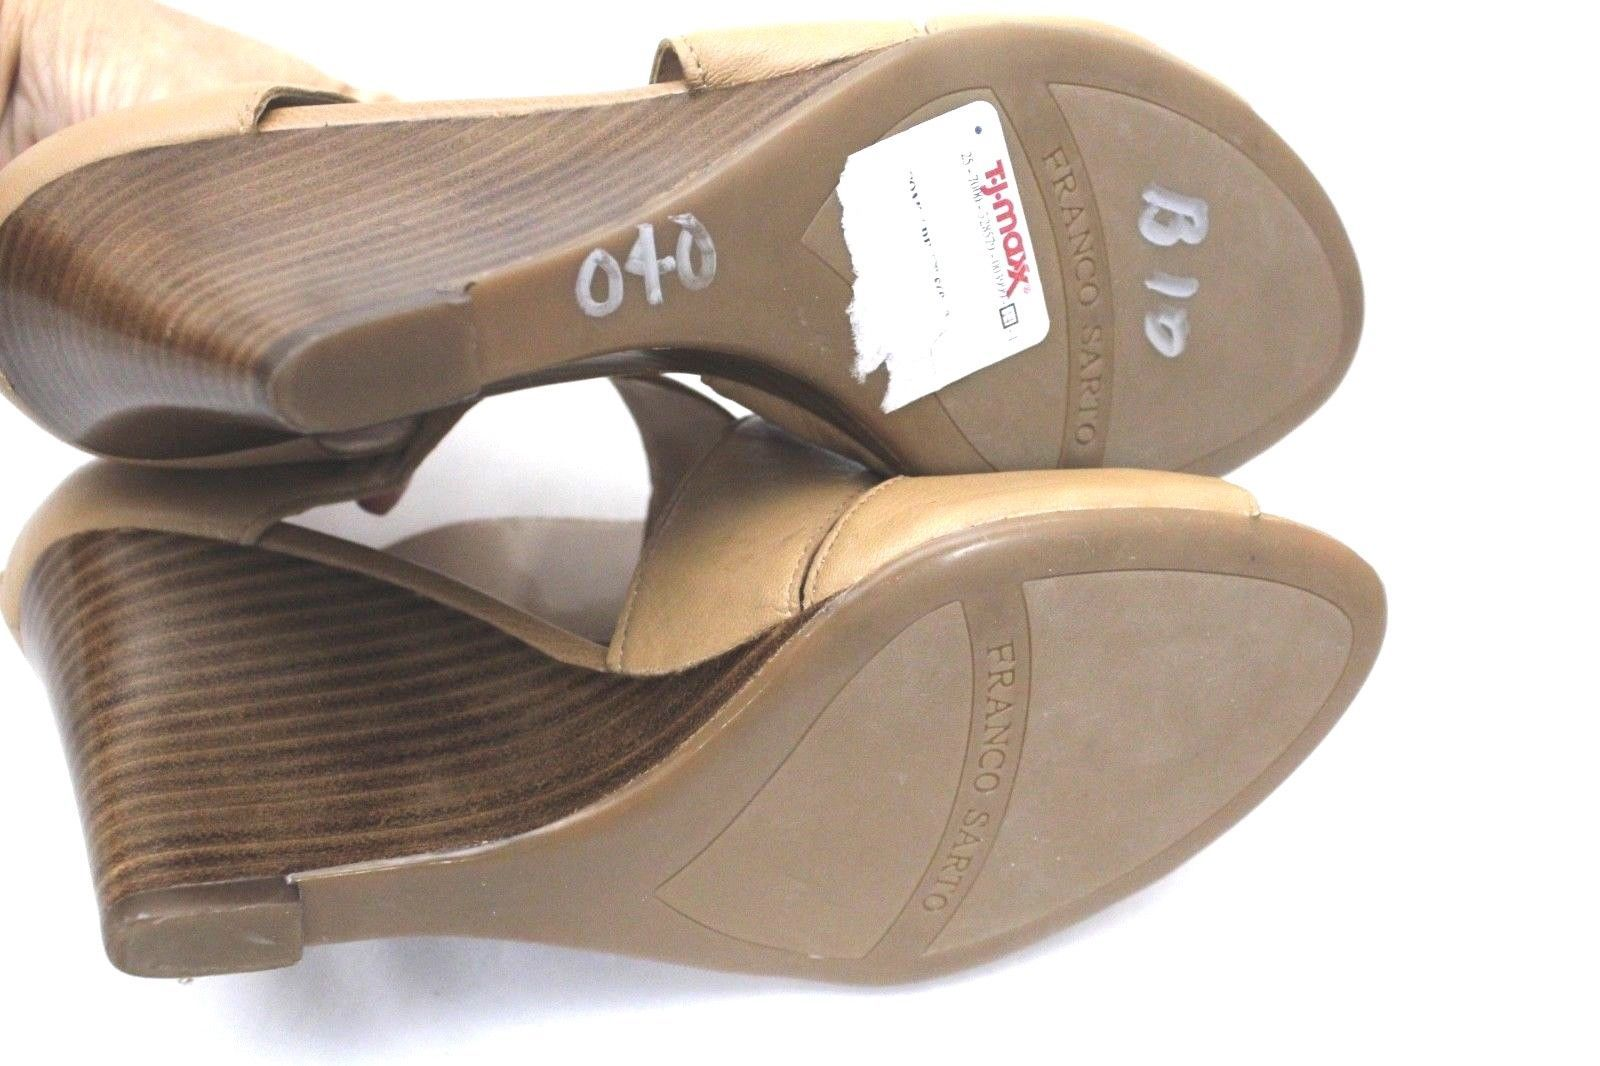 Neutral Leather Shoes Franco Sarto Giseppe Tan Caramel Wedge Sandals Women's 8 M